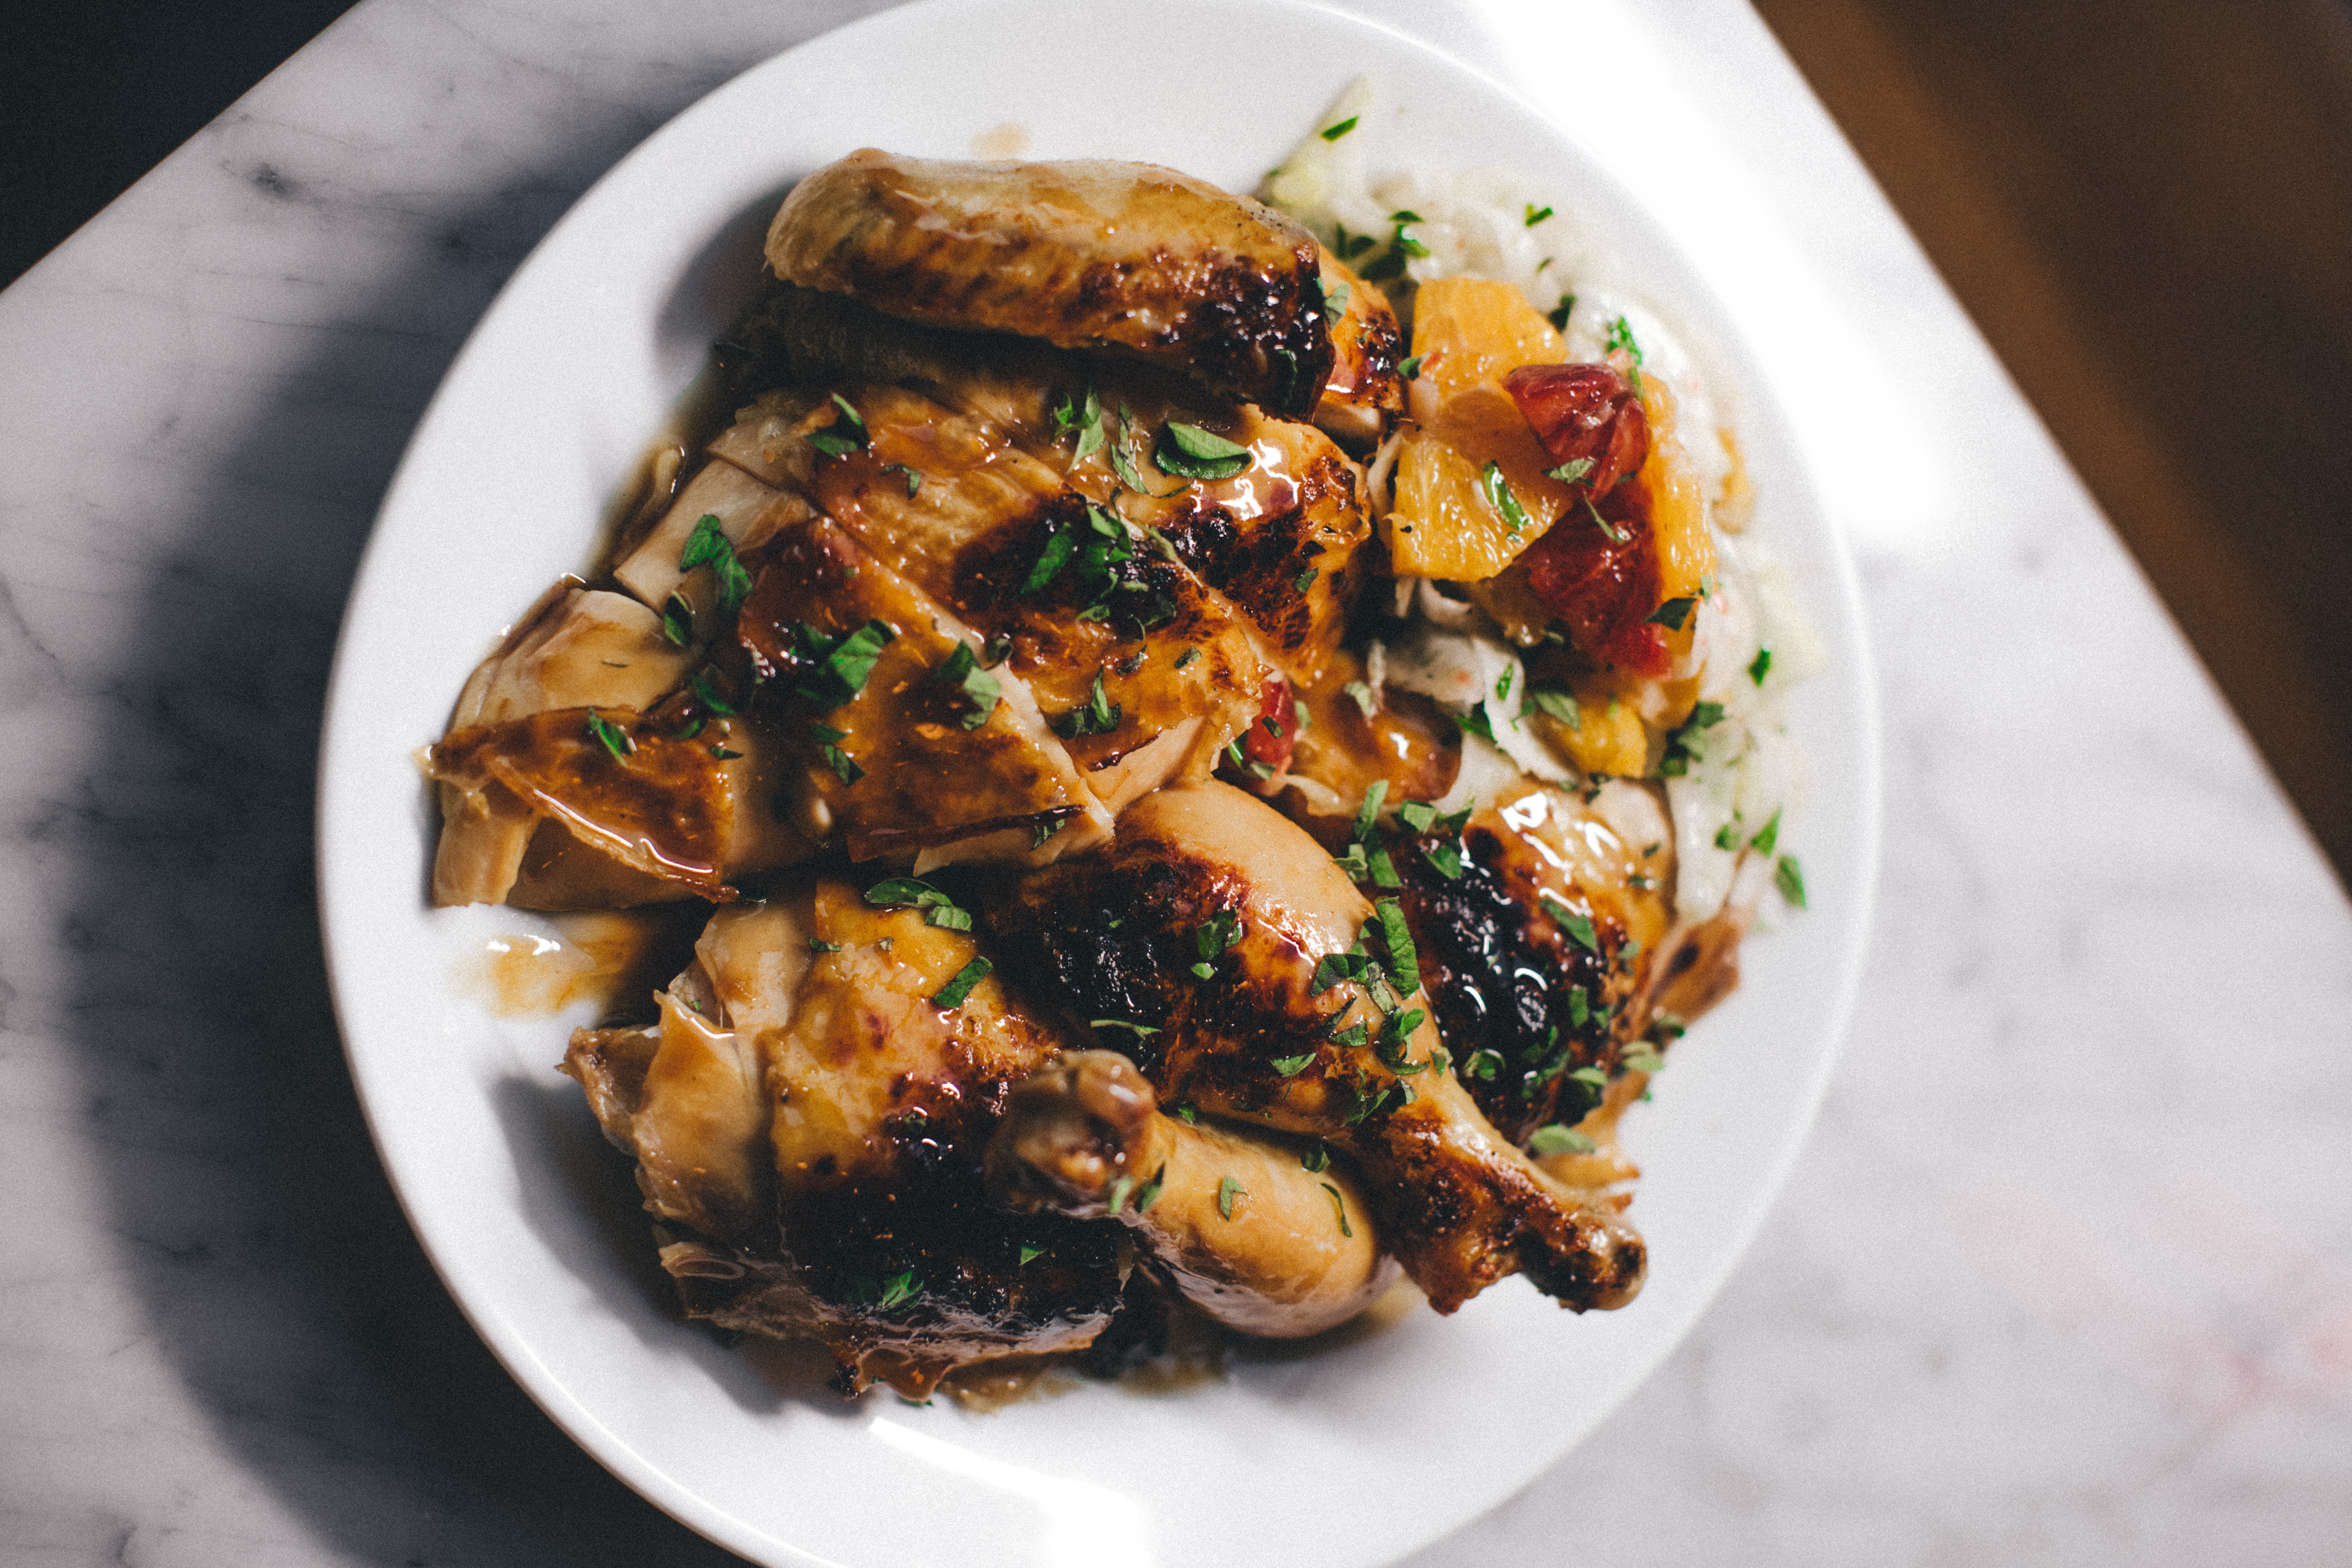 Roasted Chicken Pan Drippings